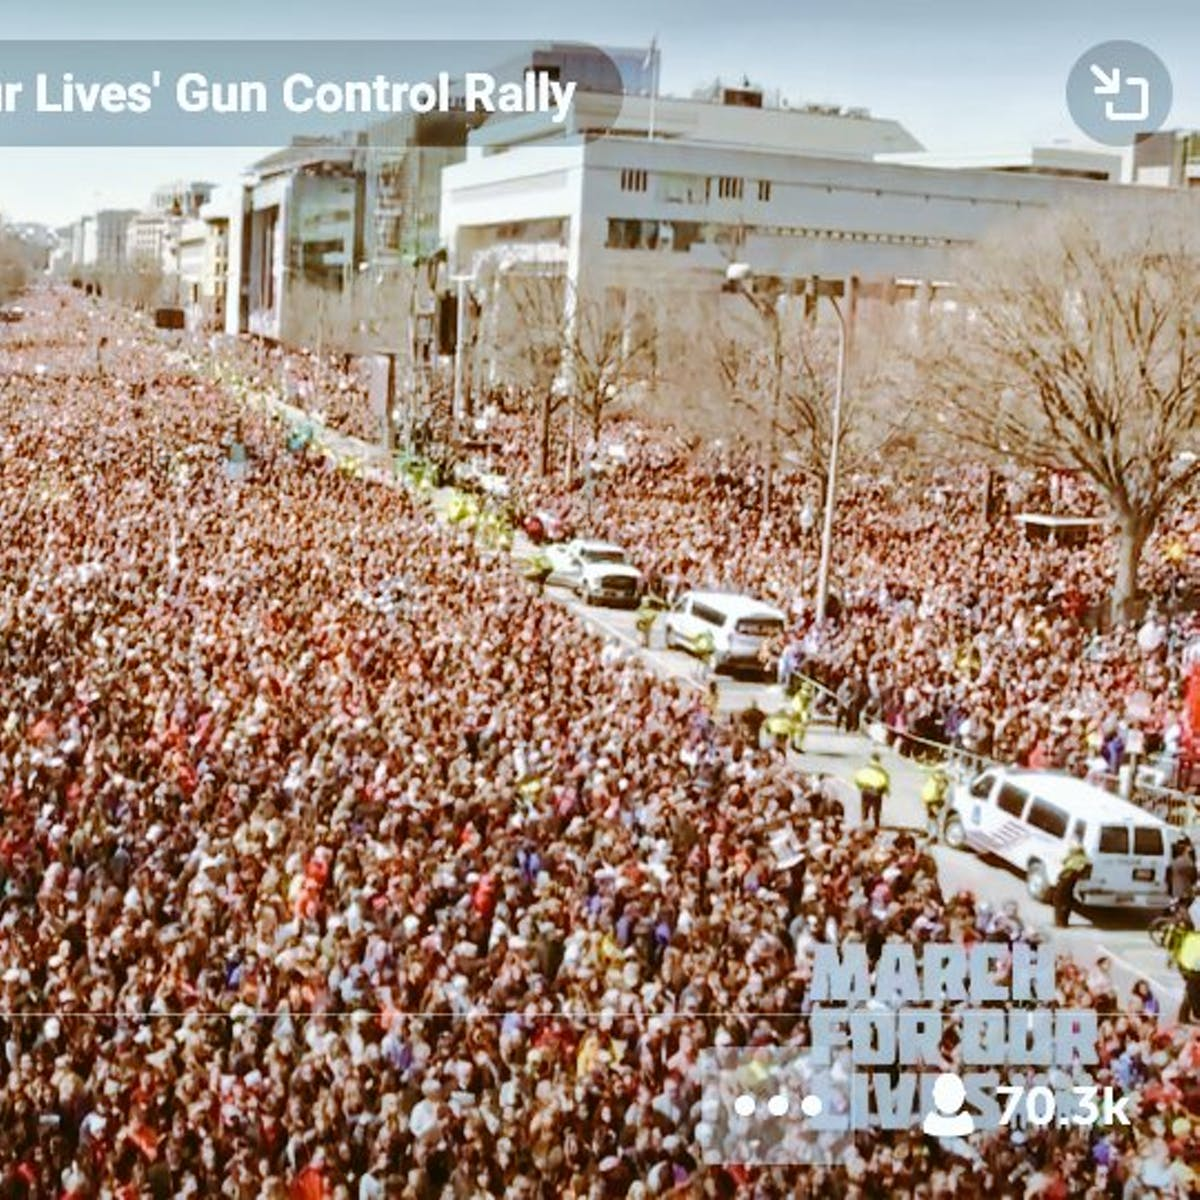 """4 Photos Show Massive Crowds at """"March For Our Lives"""" Protest in D.C."""